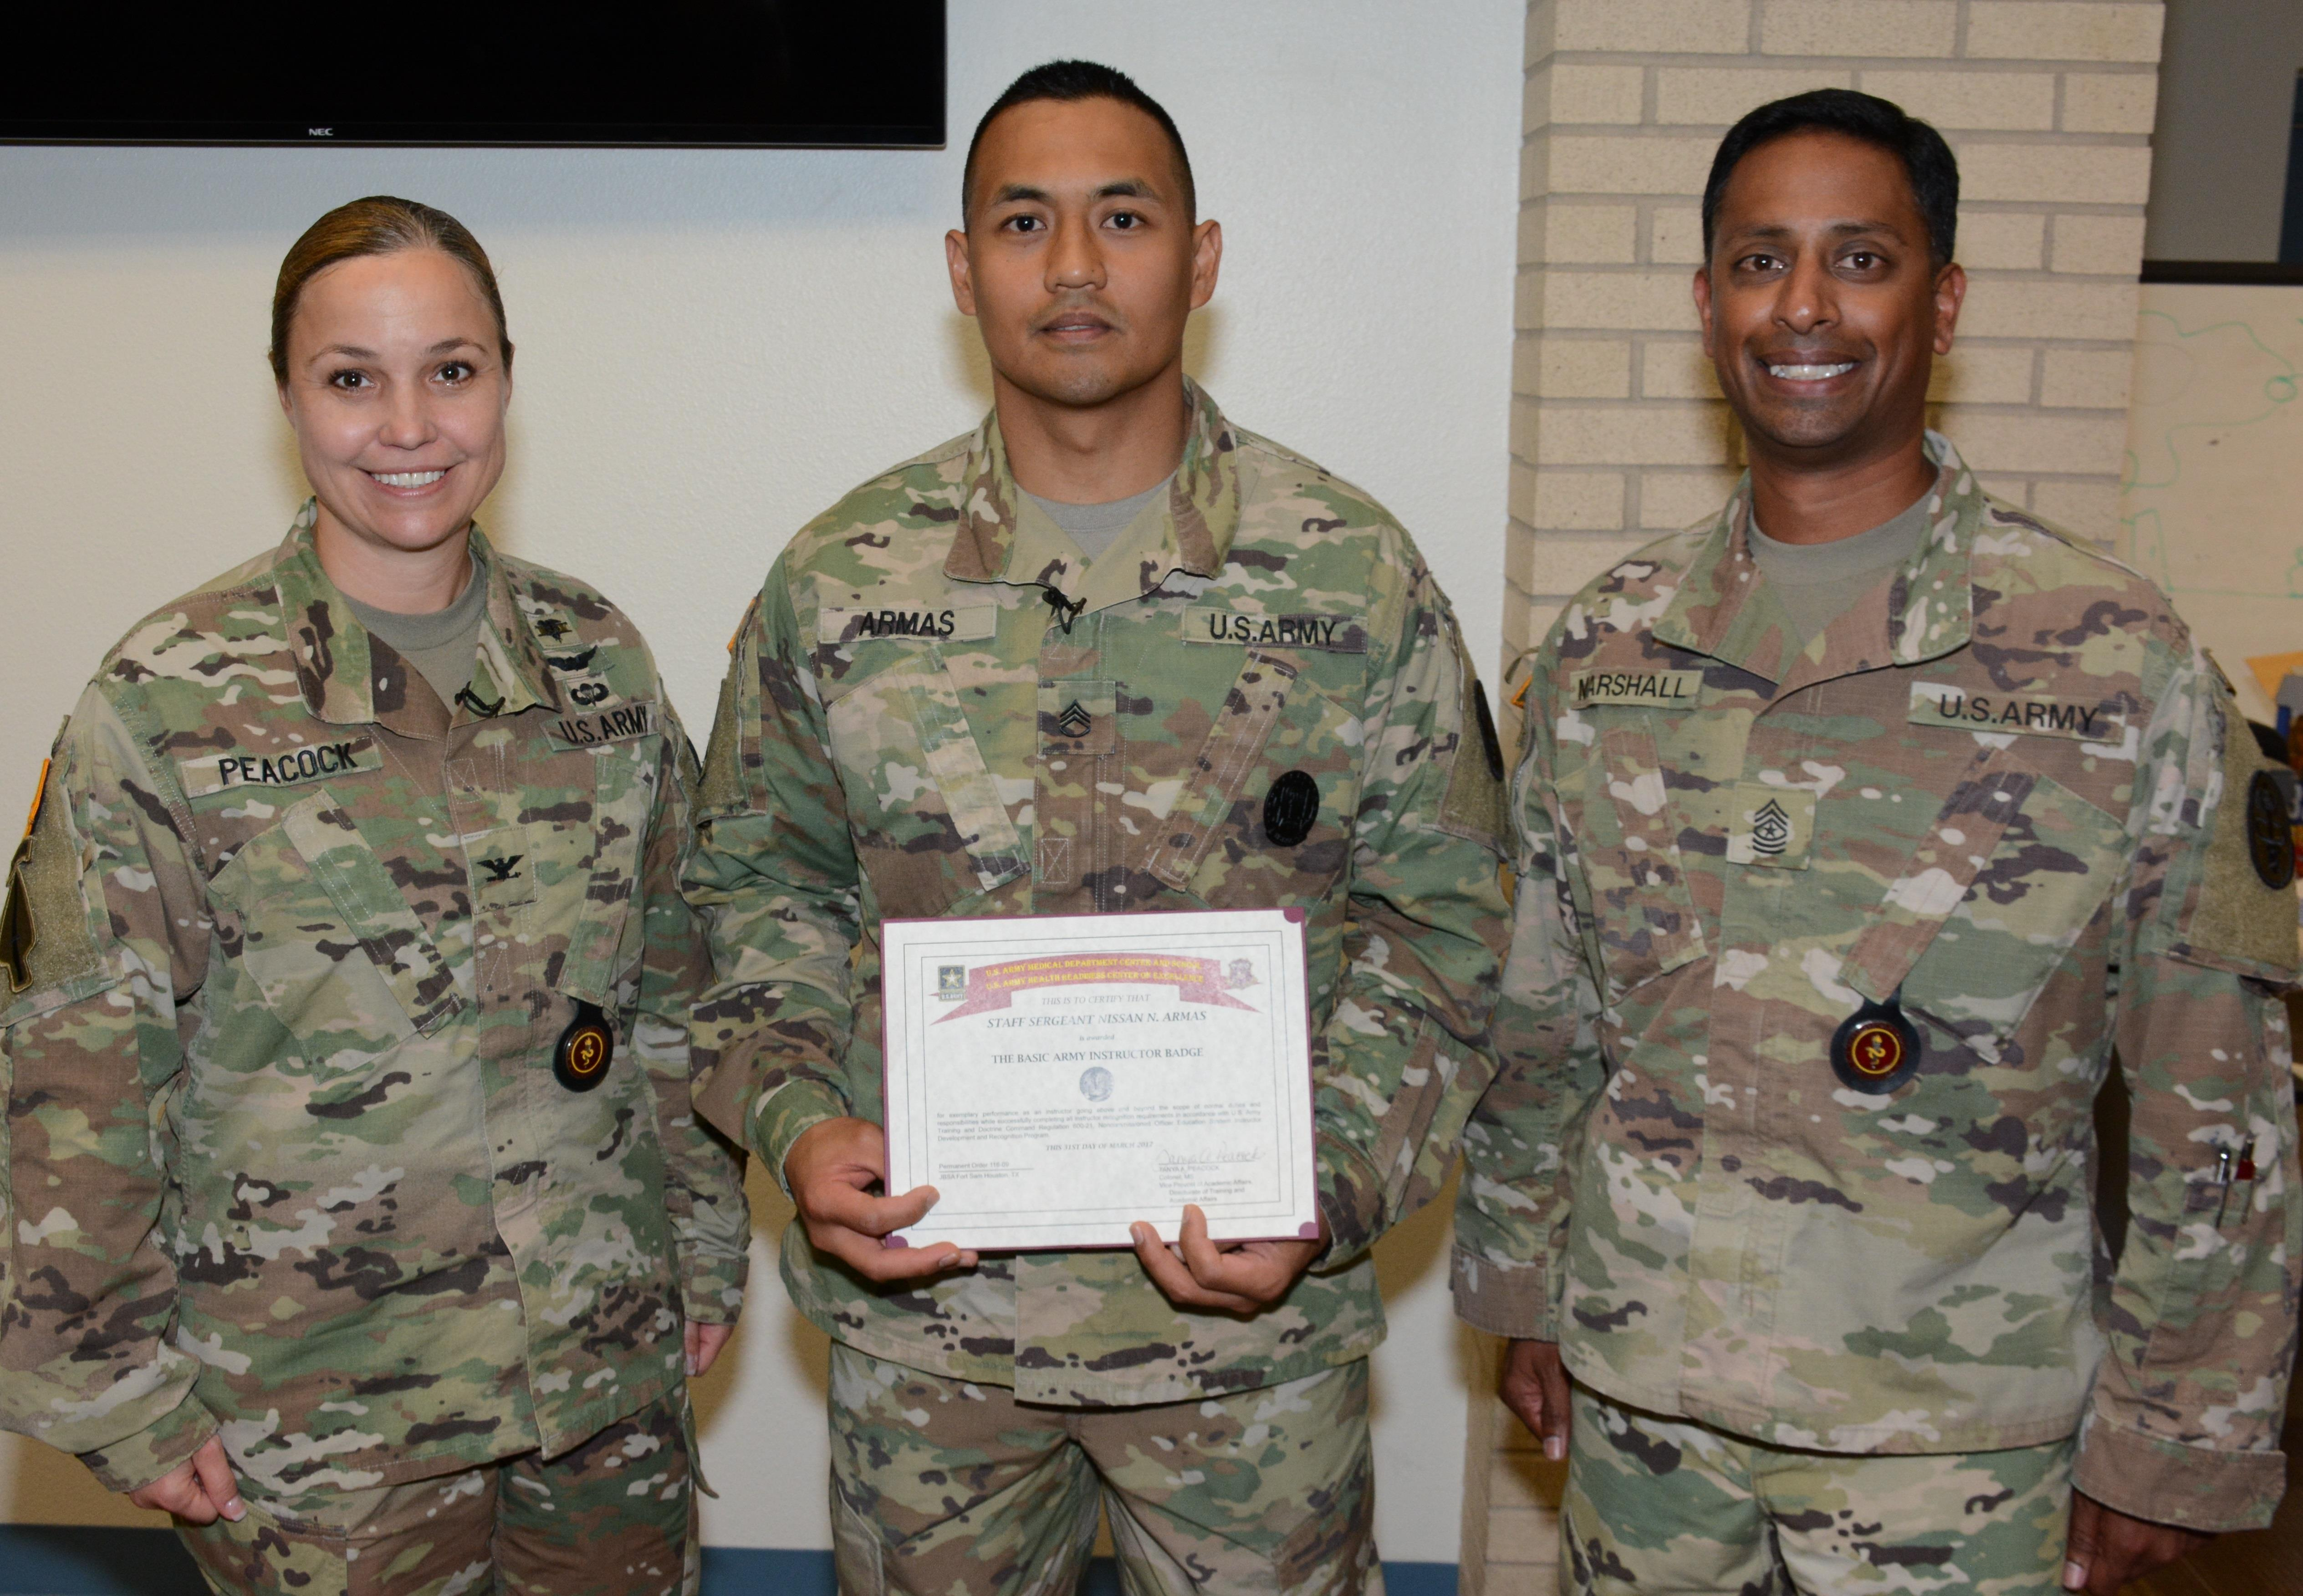 Ameddc Amp S Instructor Awarded First Basic Army Instructor